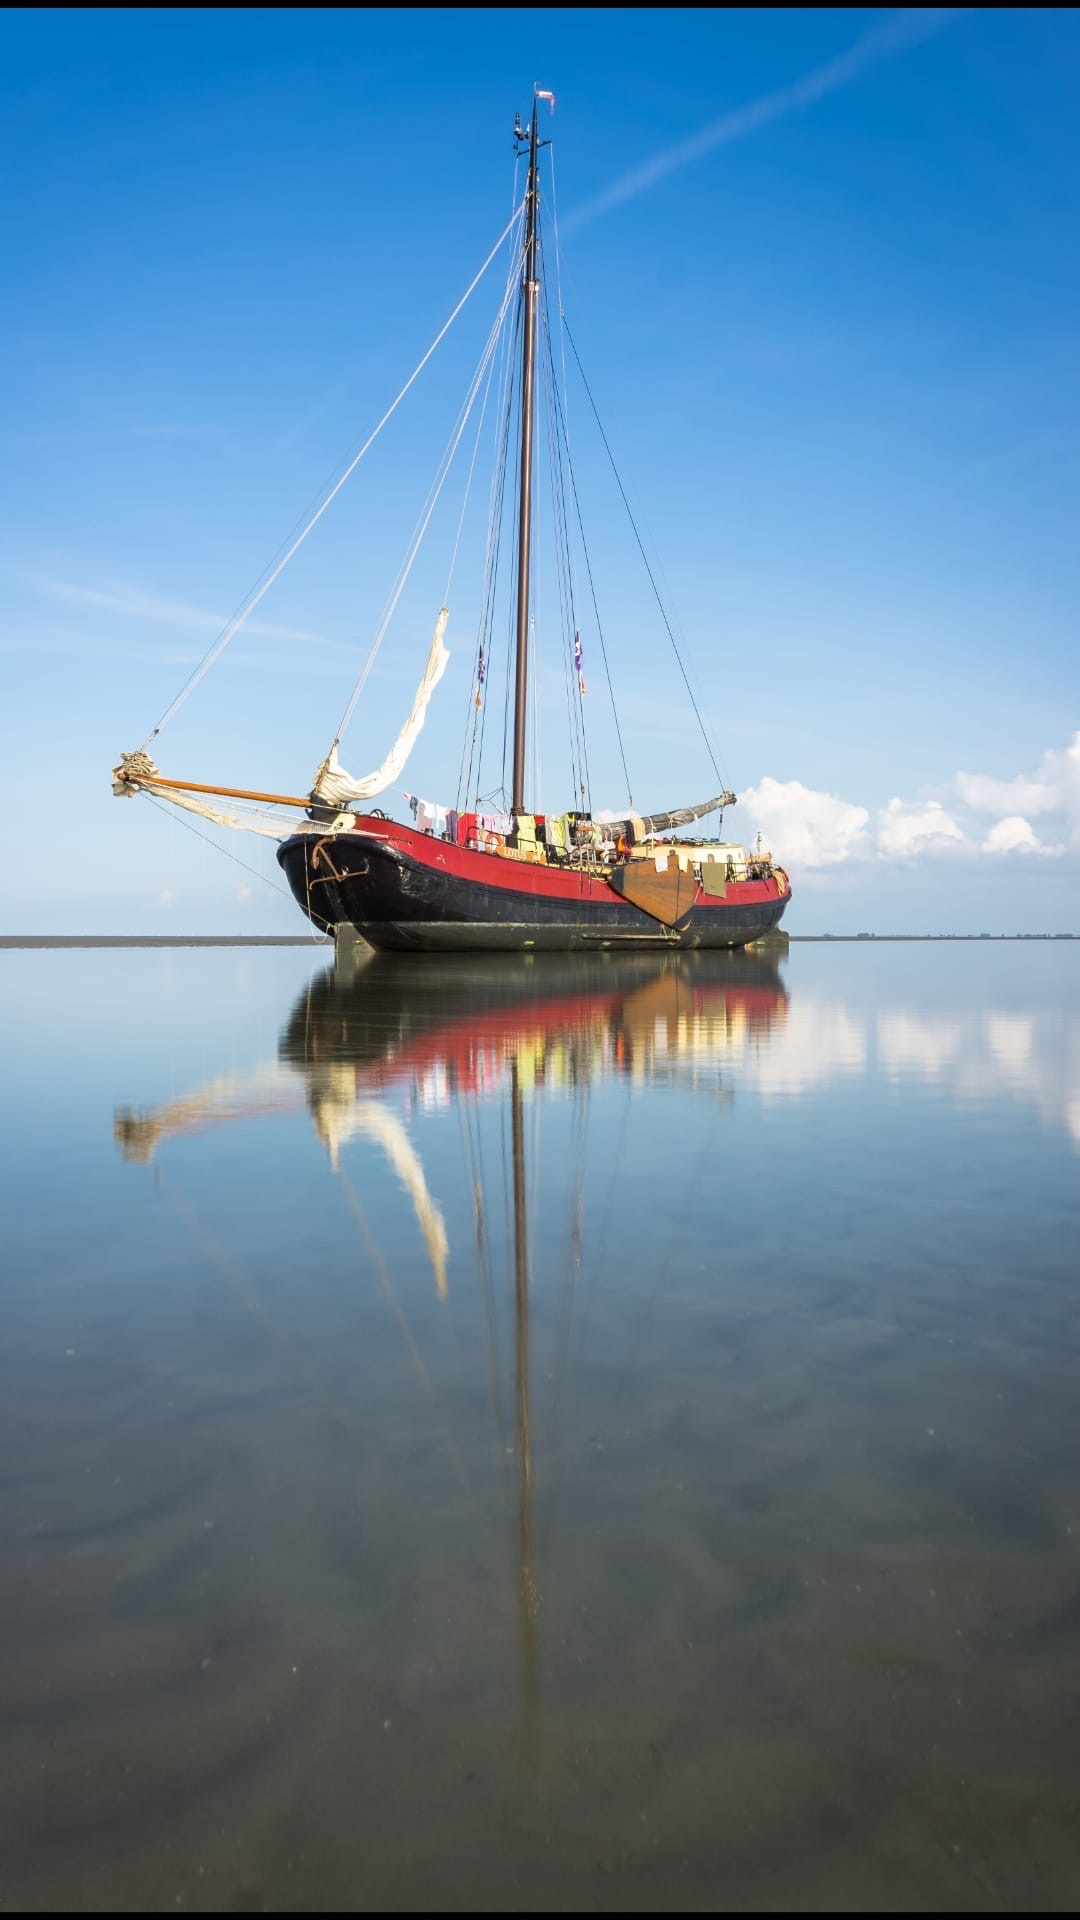 Dry out on the shallows during an sailing trip